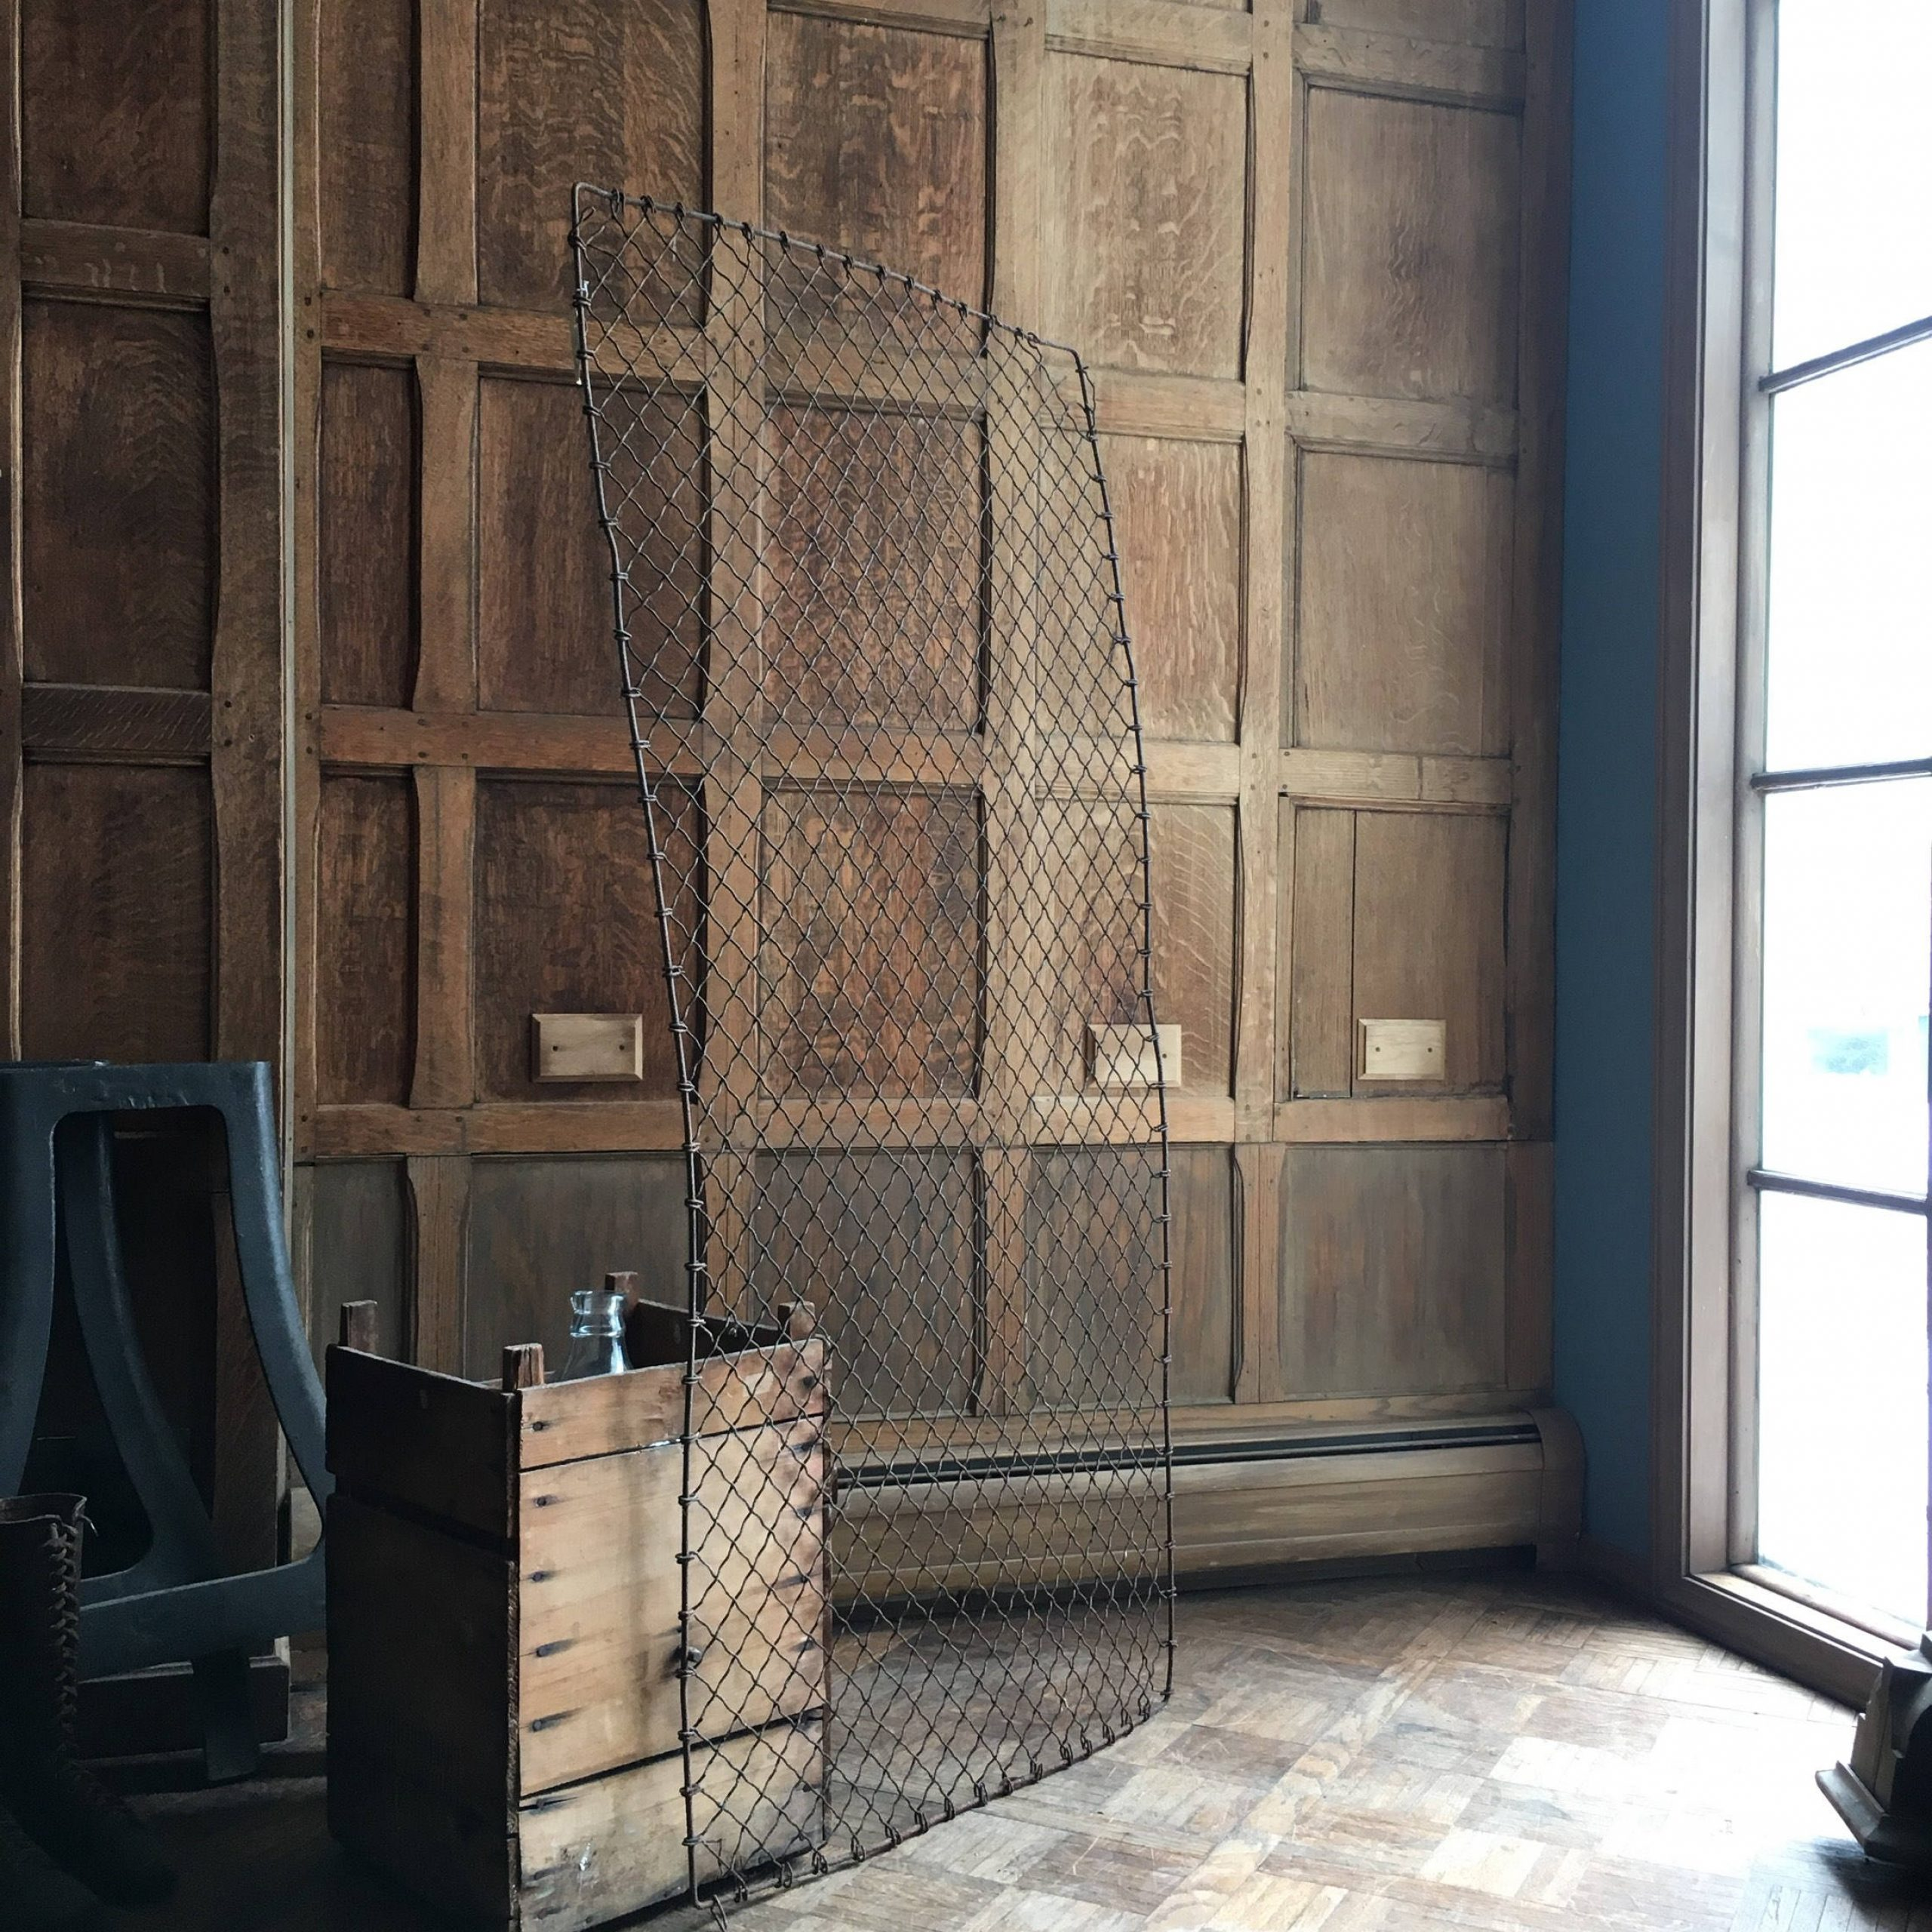 Antique Iron Alloy Wall Décor Pertaining To Latest Large Antique Metal Fence Panel, Antique Rusty Iron Gate (View 8 of 20)